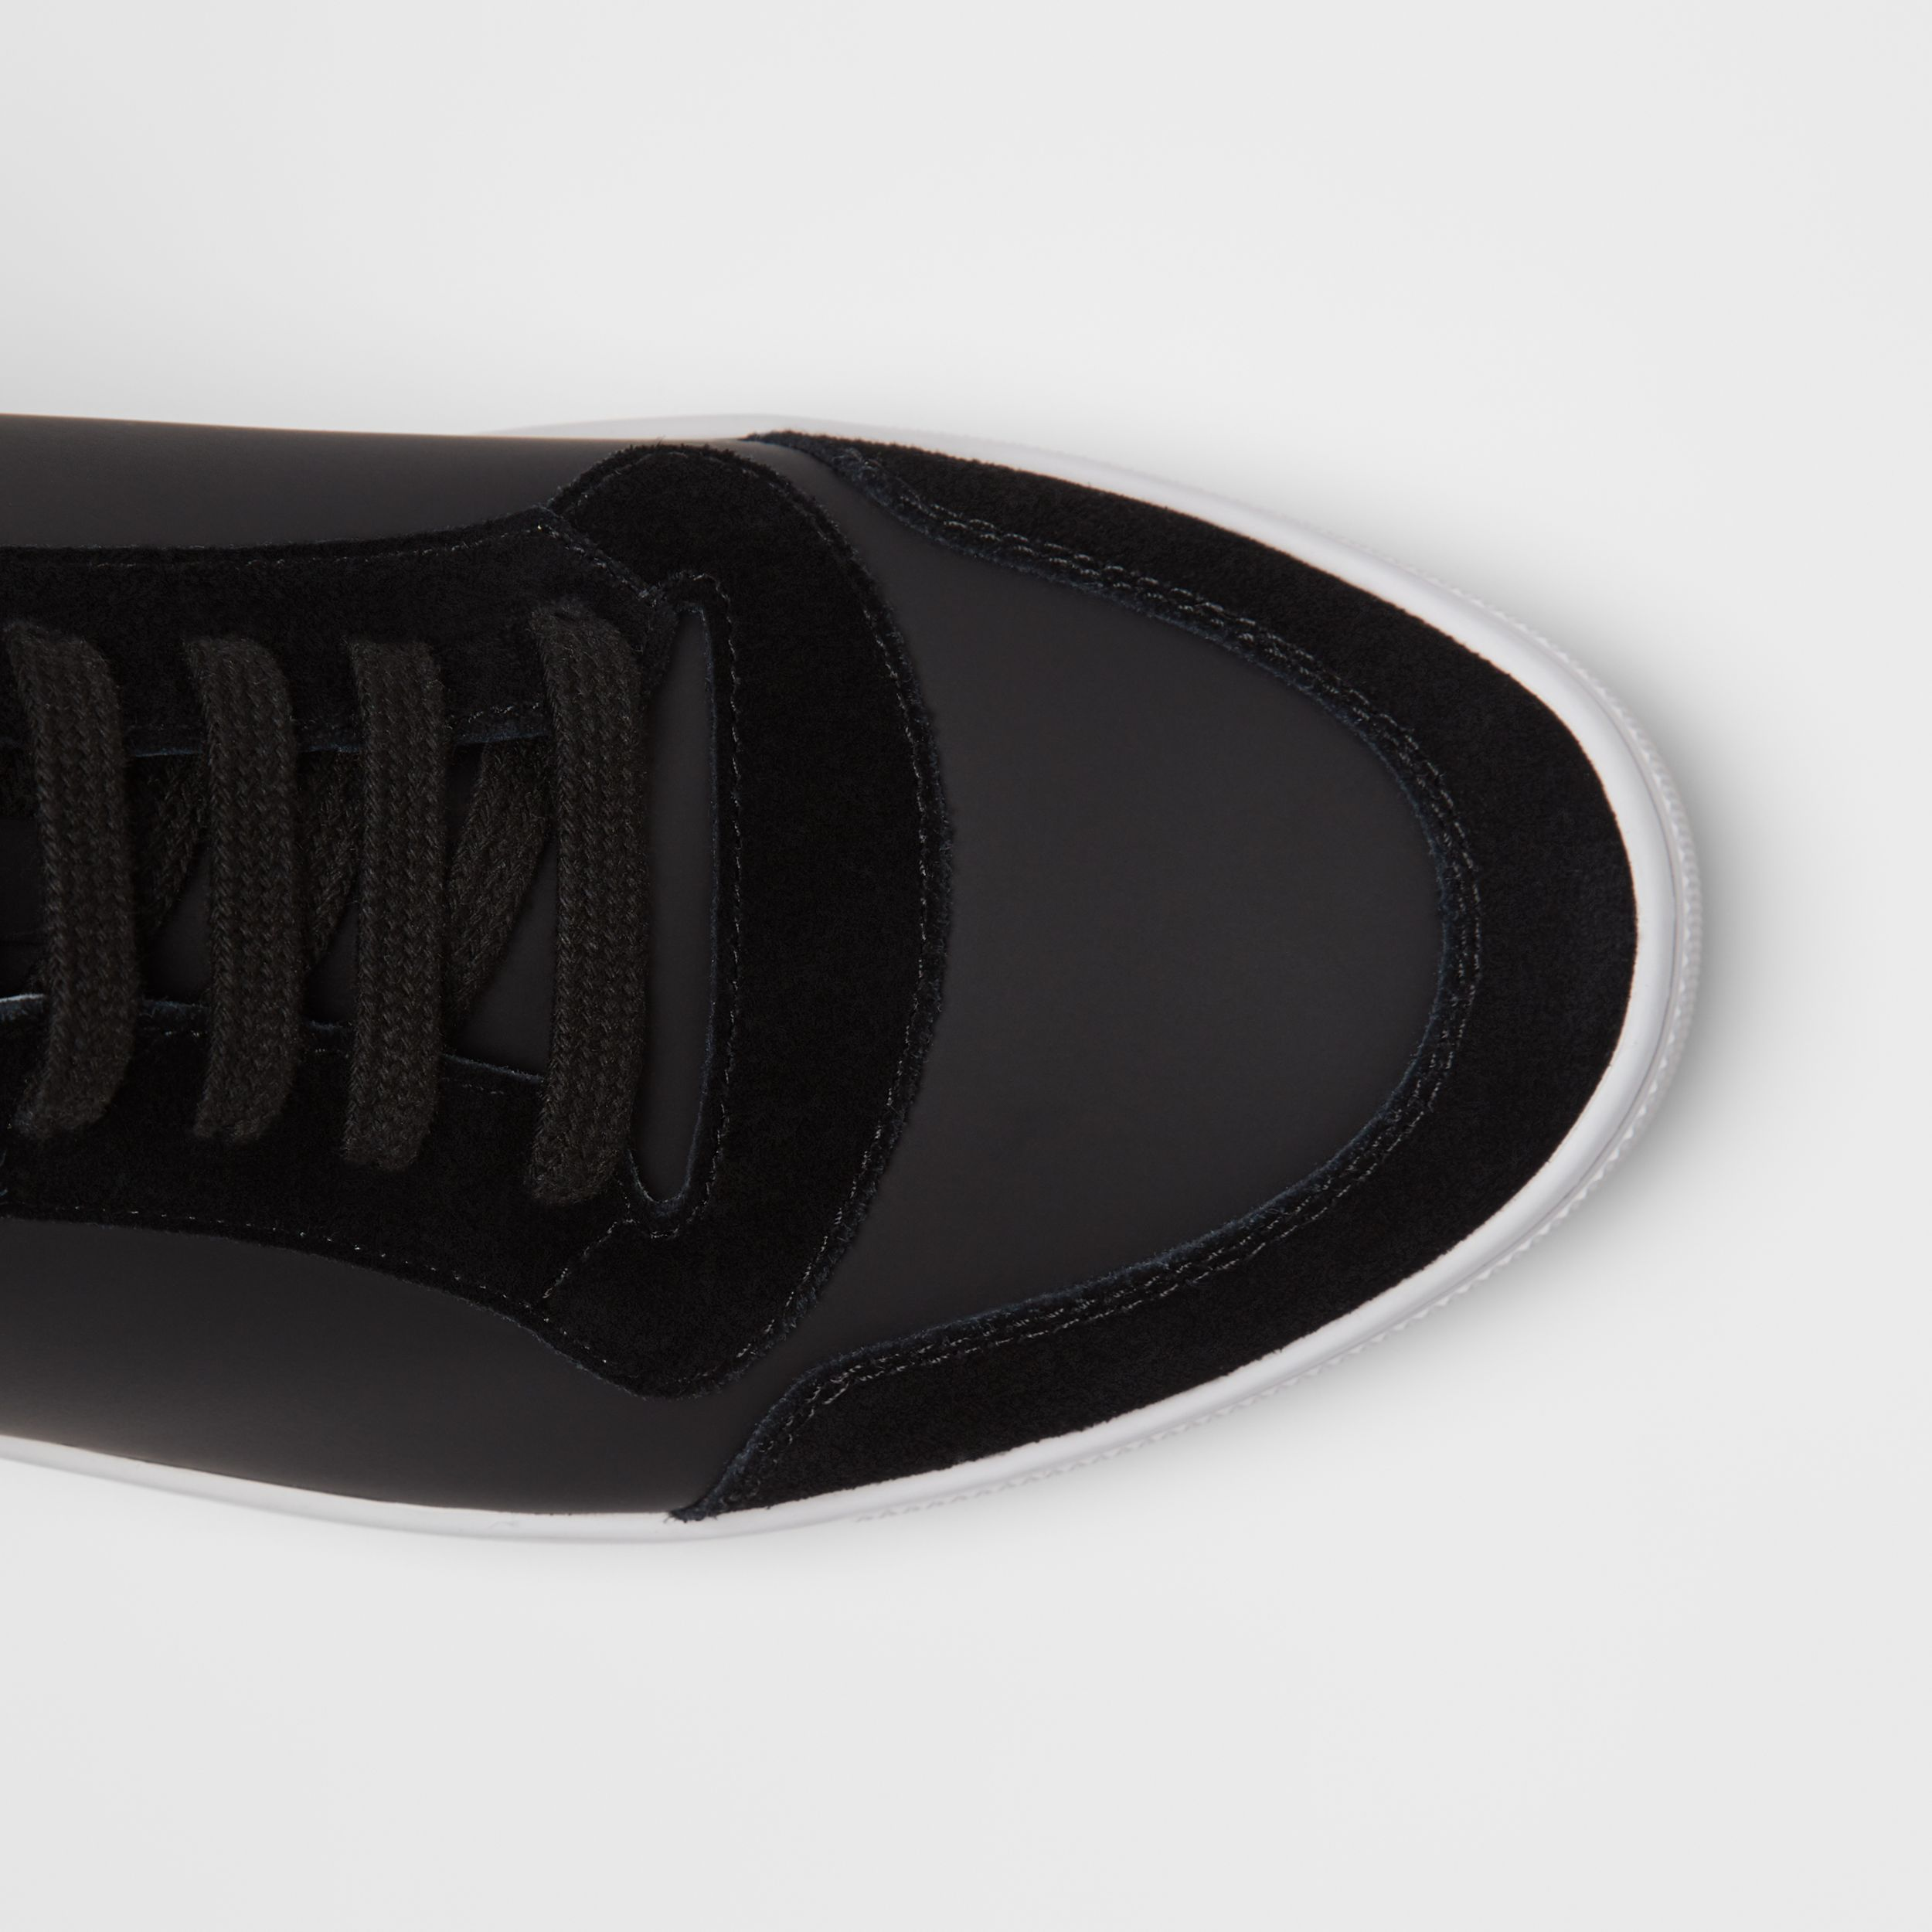 Leather and House Check High-top Sneakers in Black - Men | Burberry - 2